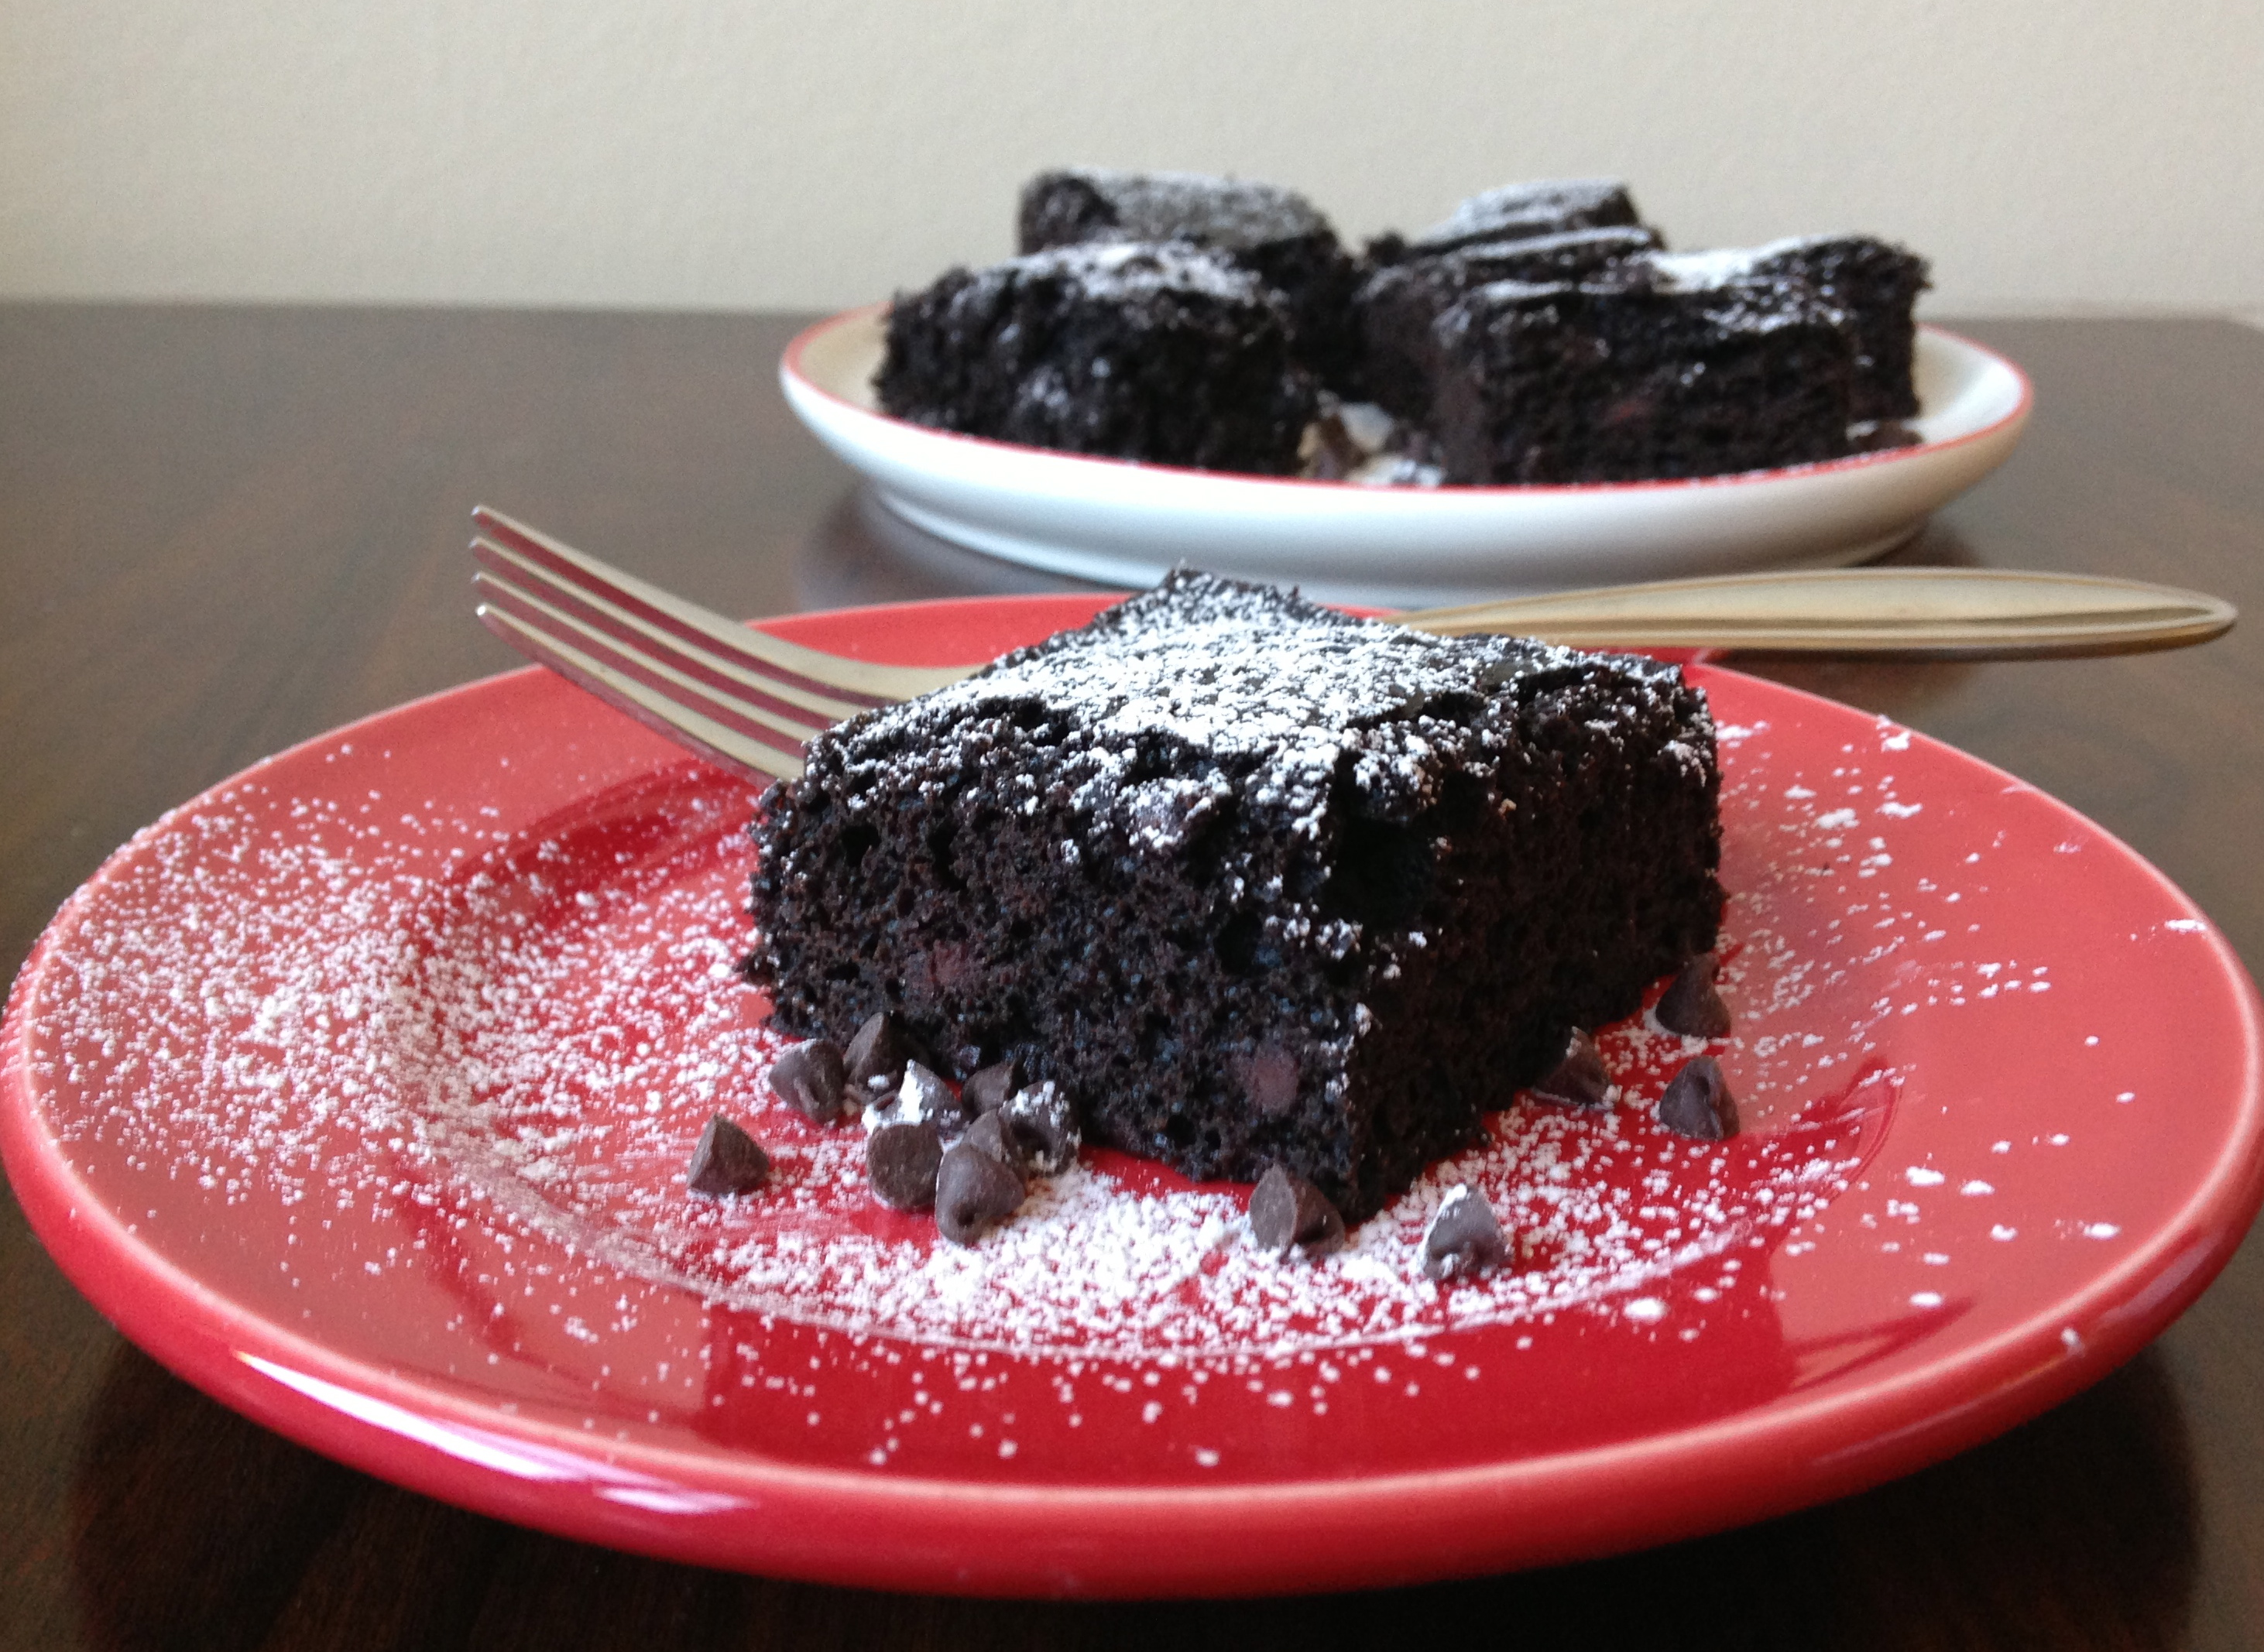 Skinny Chocolate Cake Made With Greek Yogurt